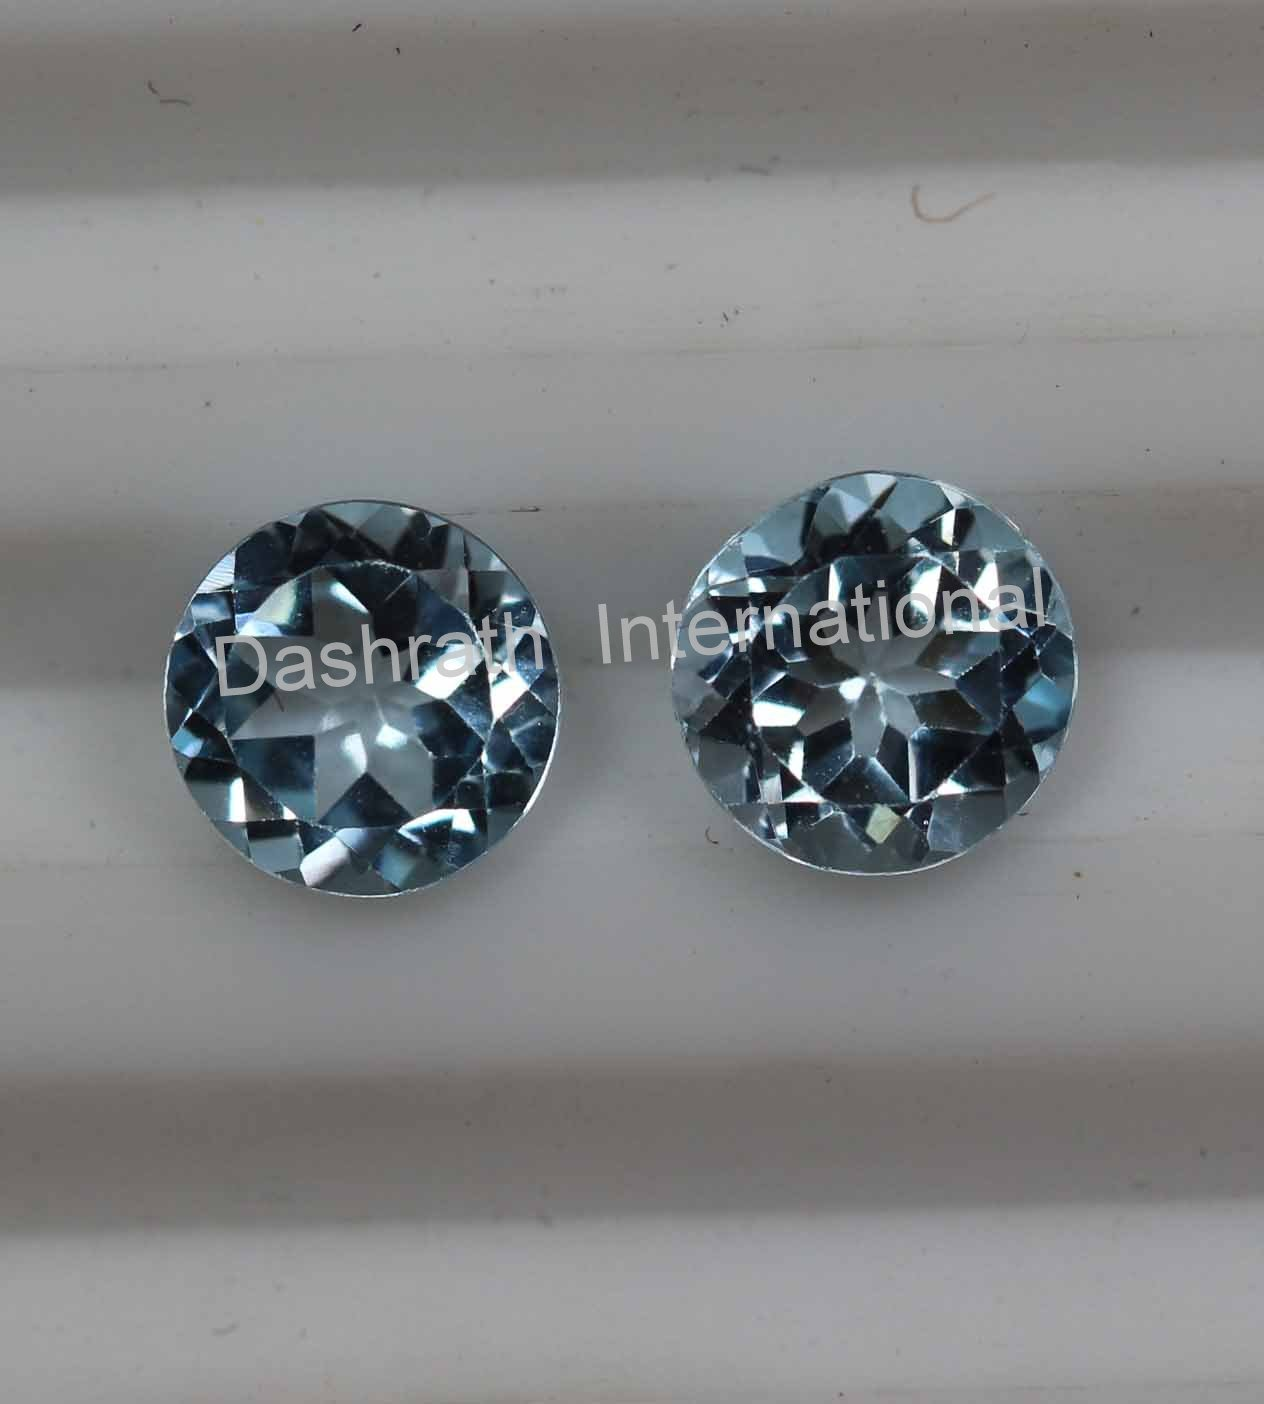 8mmNatural Sky Blue Topaz Faceted Cut Round 2 Piece (1 Pair ) Blue Color  Top Quality Loose Gemstone